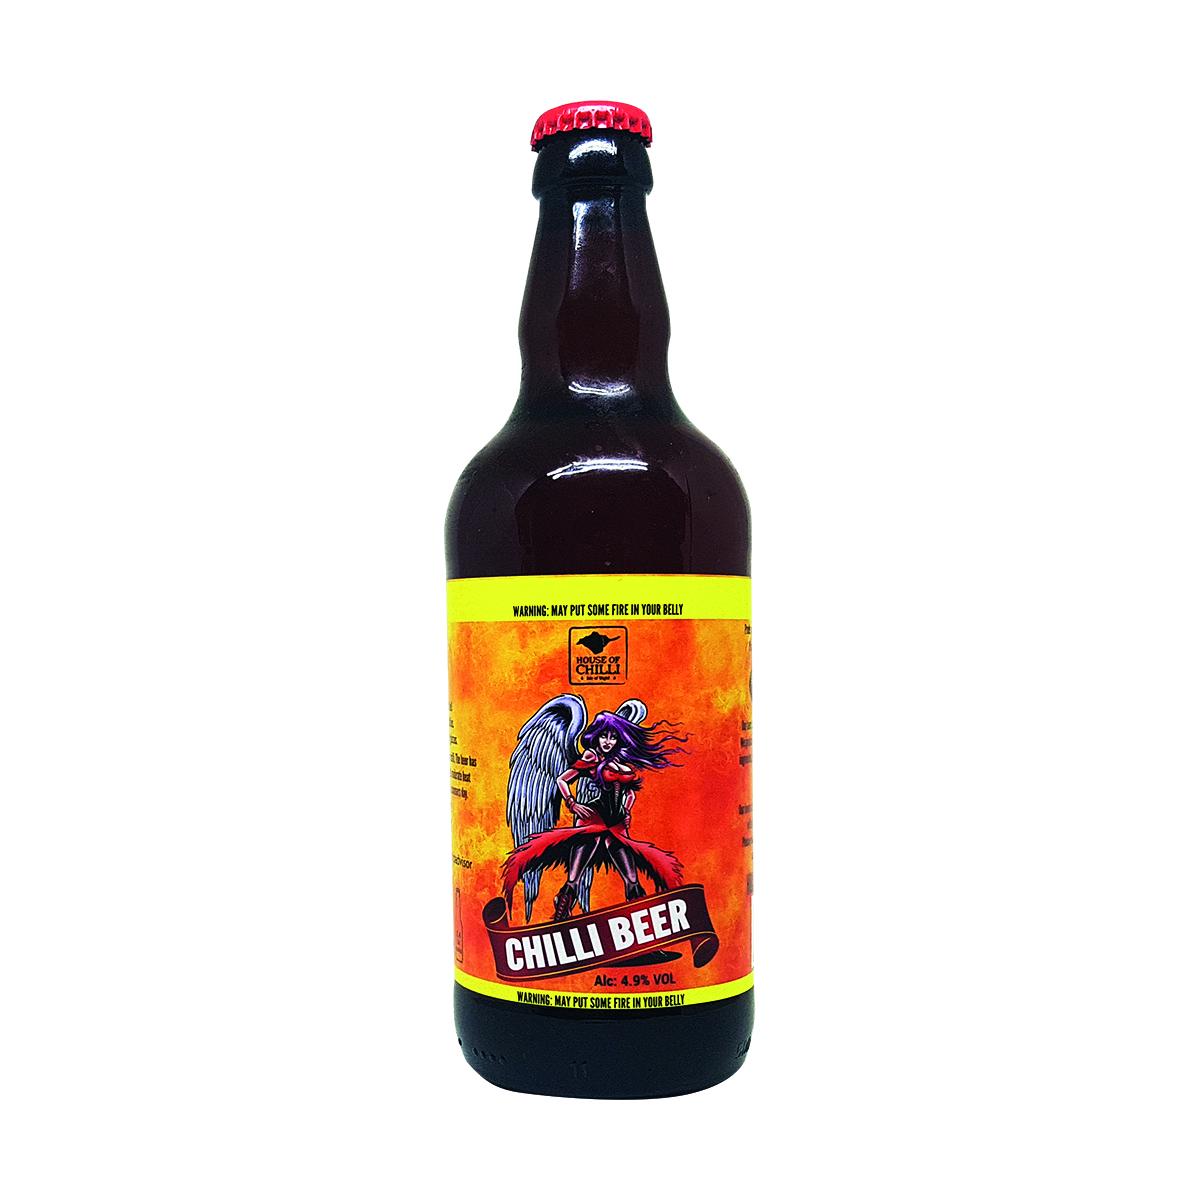 Chilli Beer